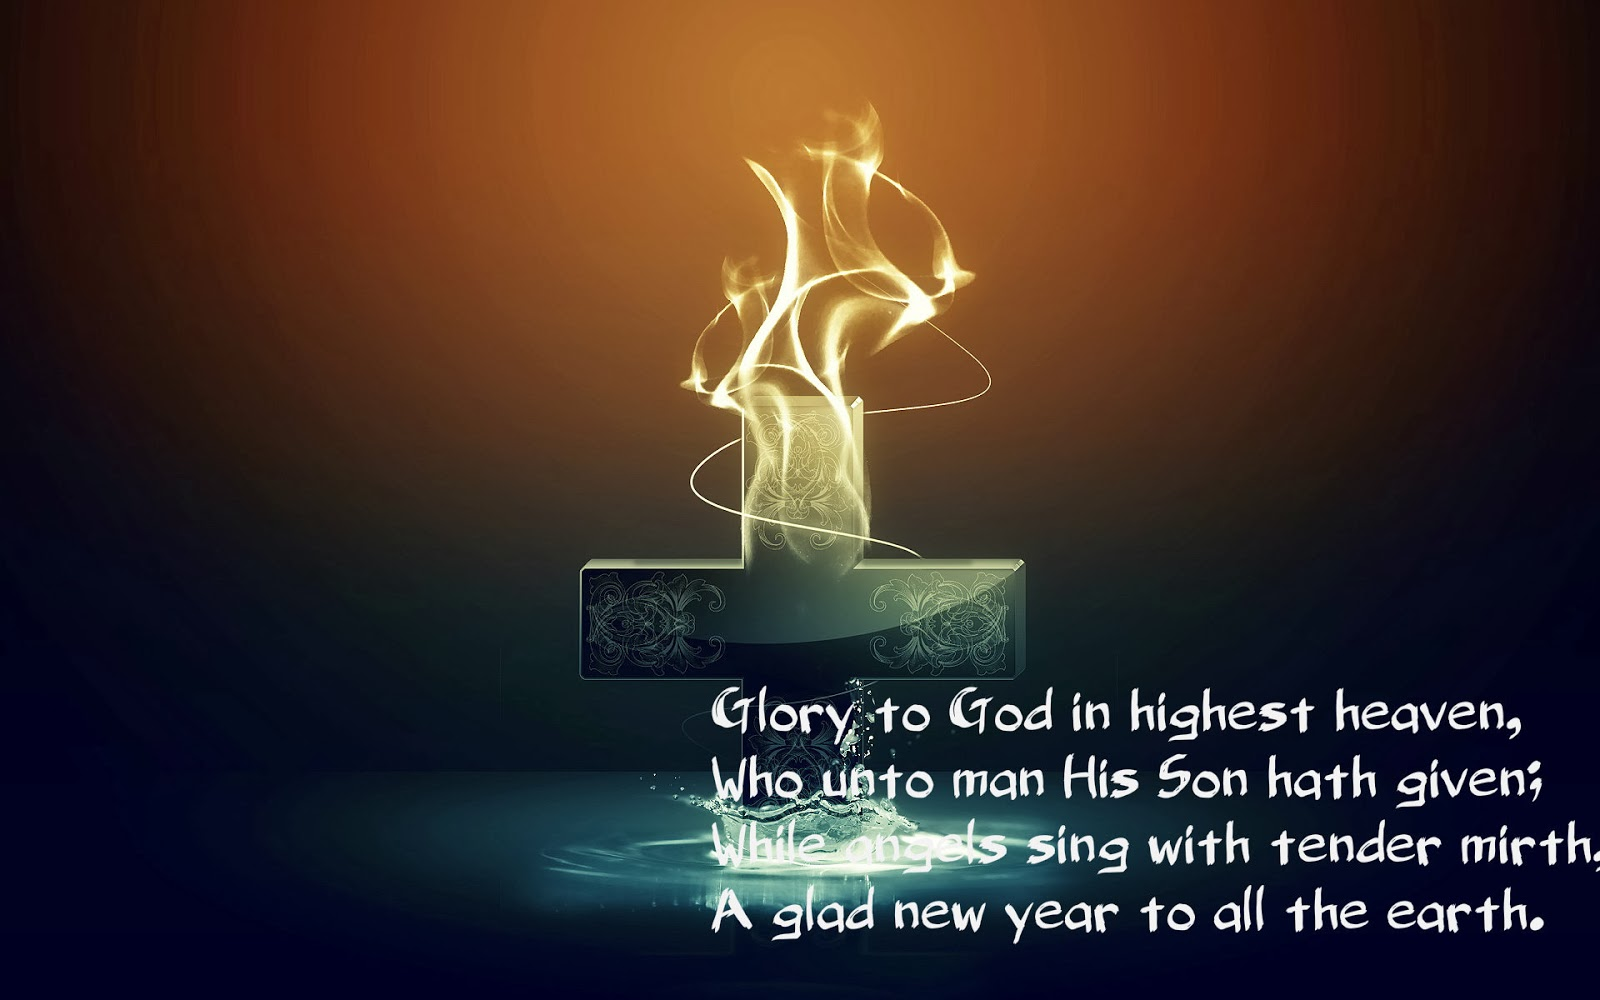 Religious new year clip art merry christmas and happy new year 2018 religious new year clip art voltagebd Image collections